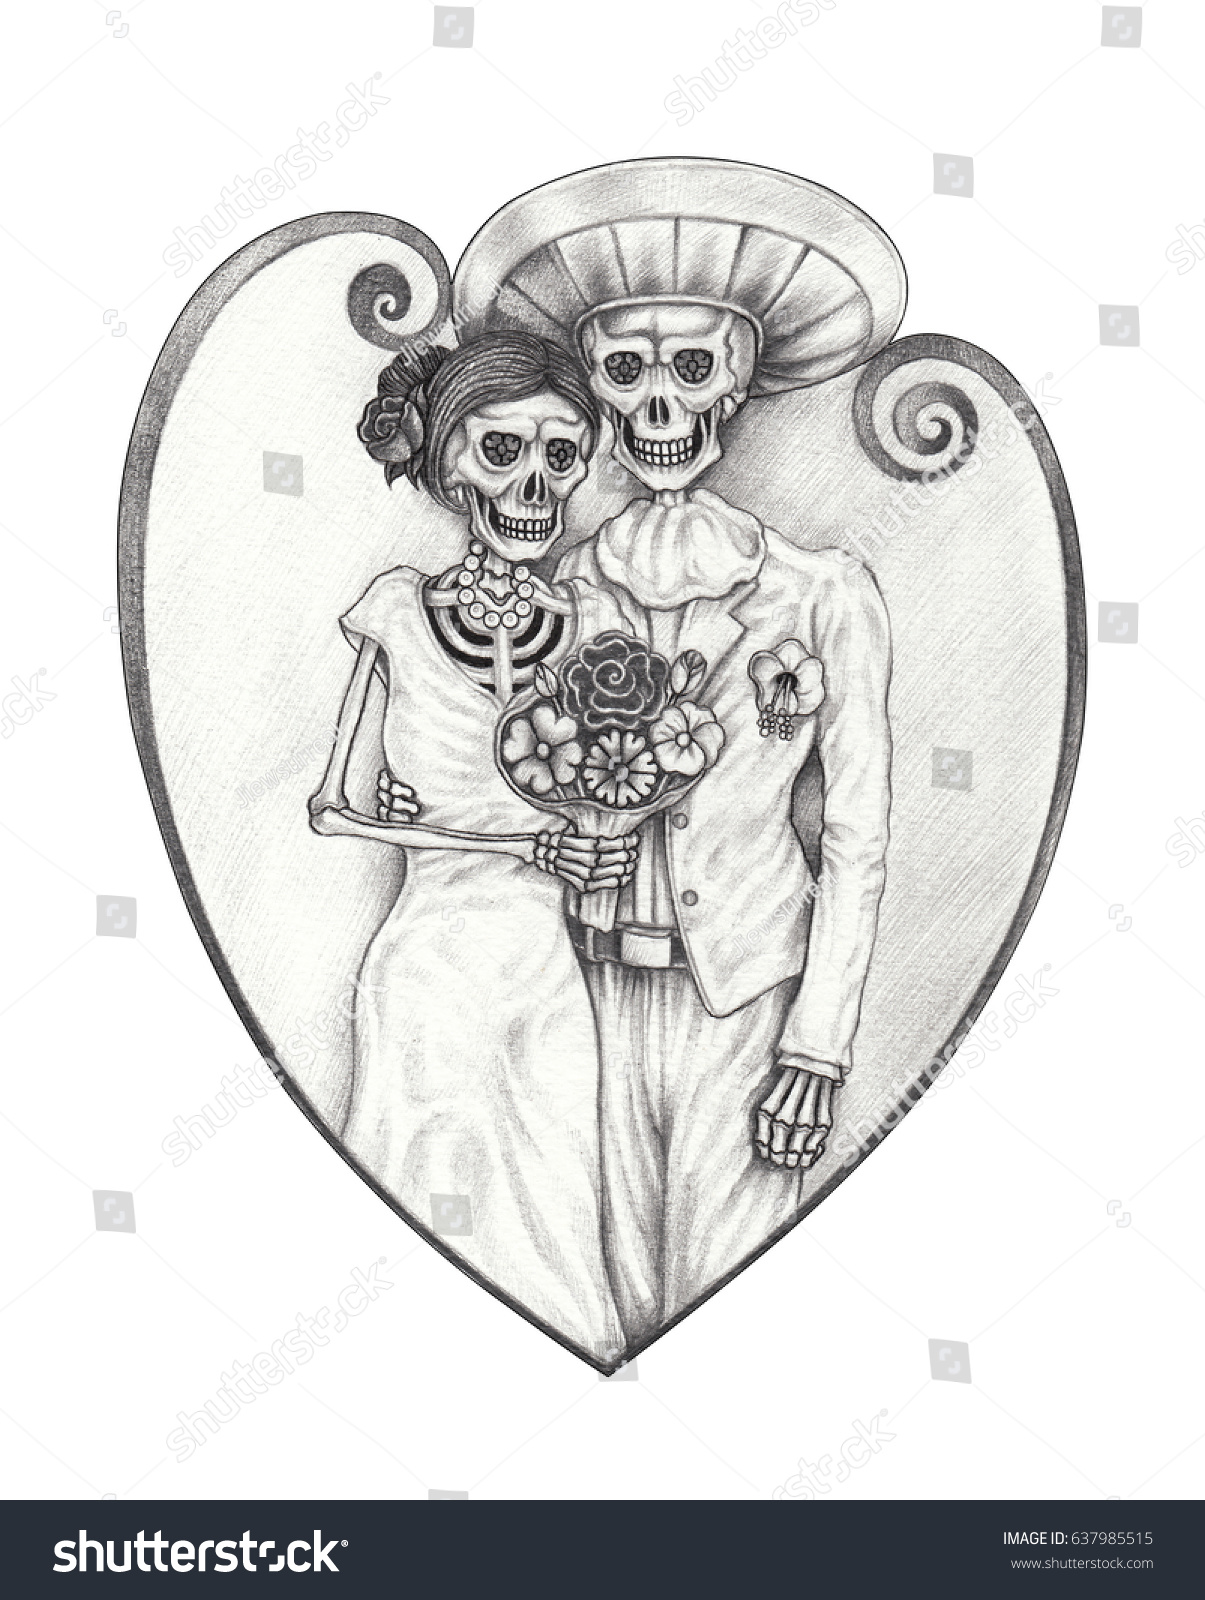 3e428b16b Art wedding skulls day of the dead. Hand pencil drawing on paper.